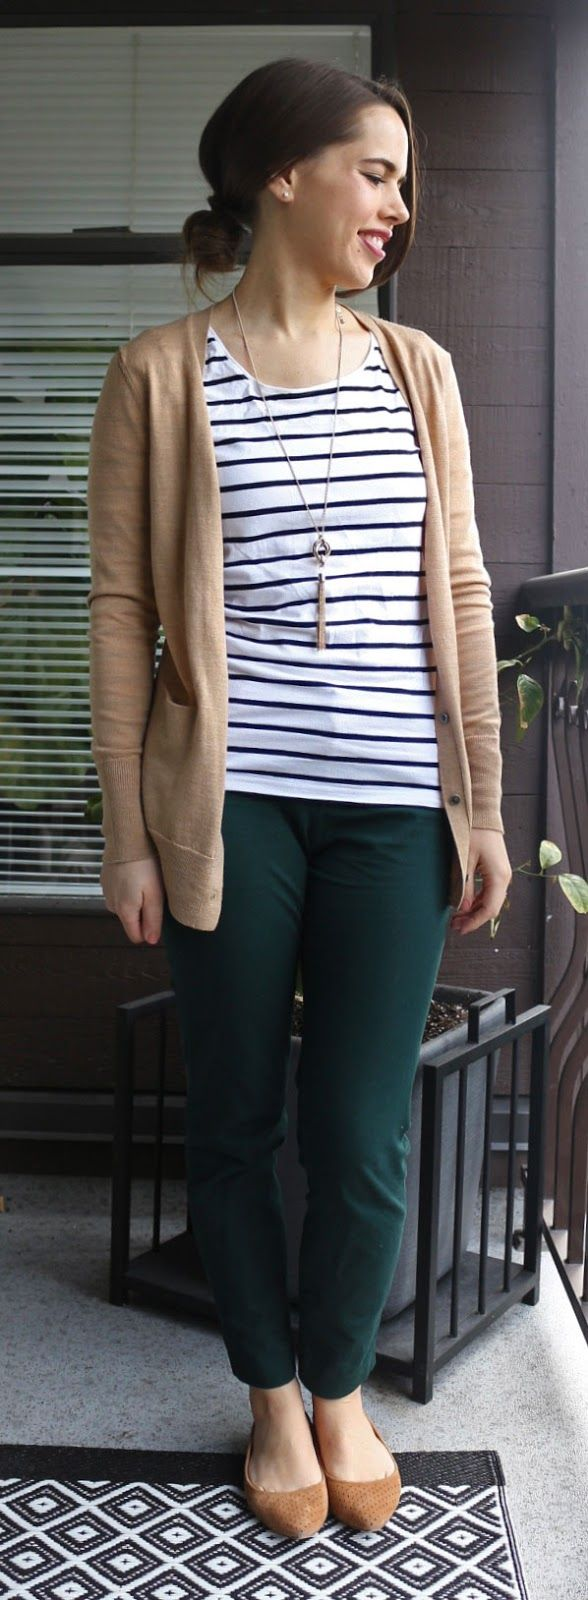 Jules in Flats - Striped Shirt, Camel Cardigan, Ankle Pants